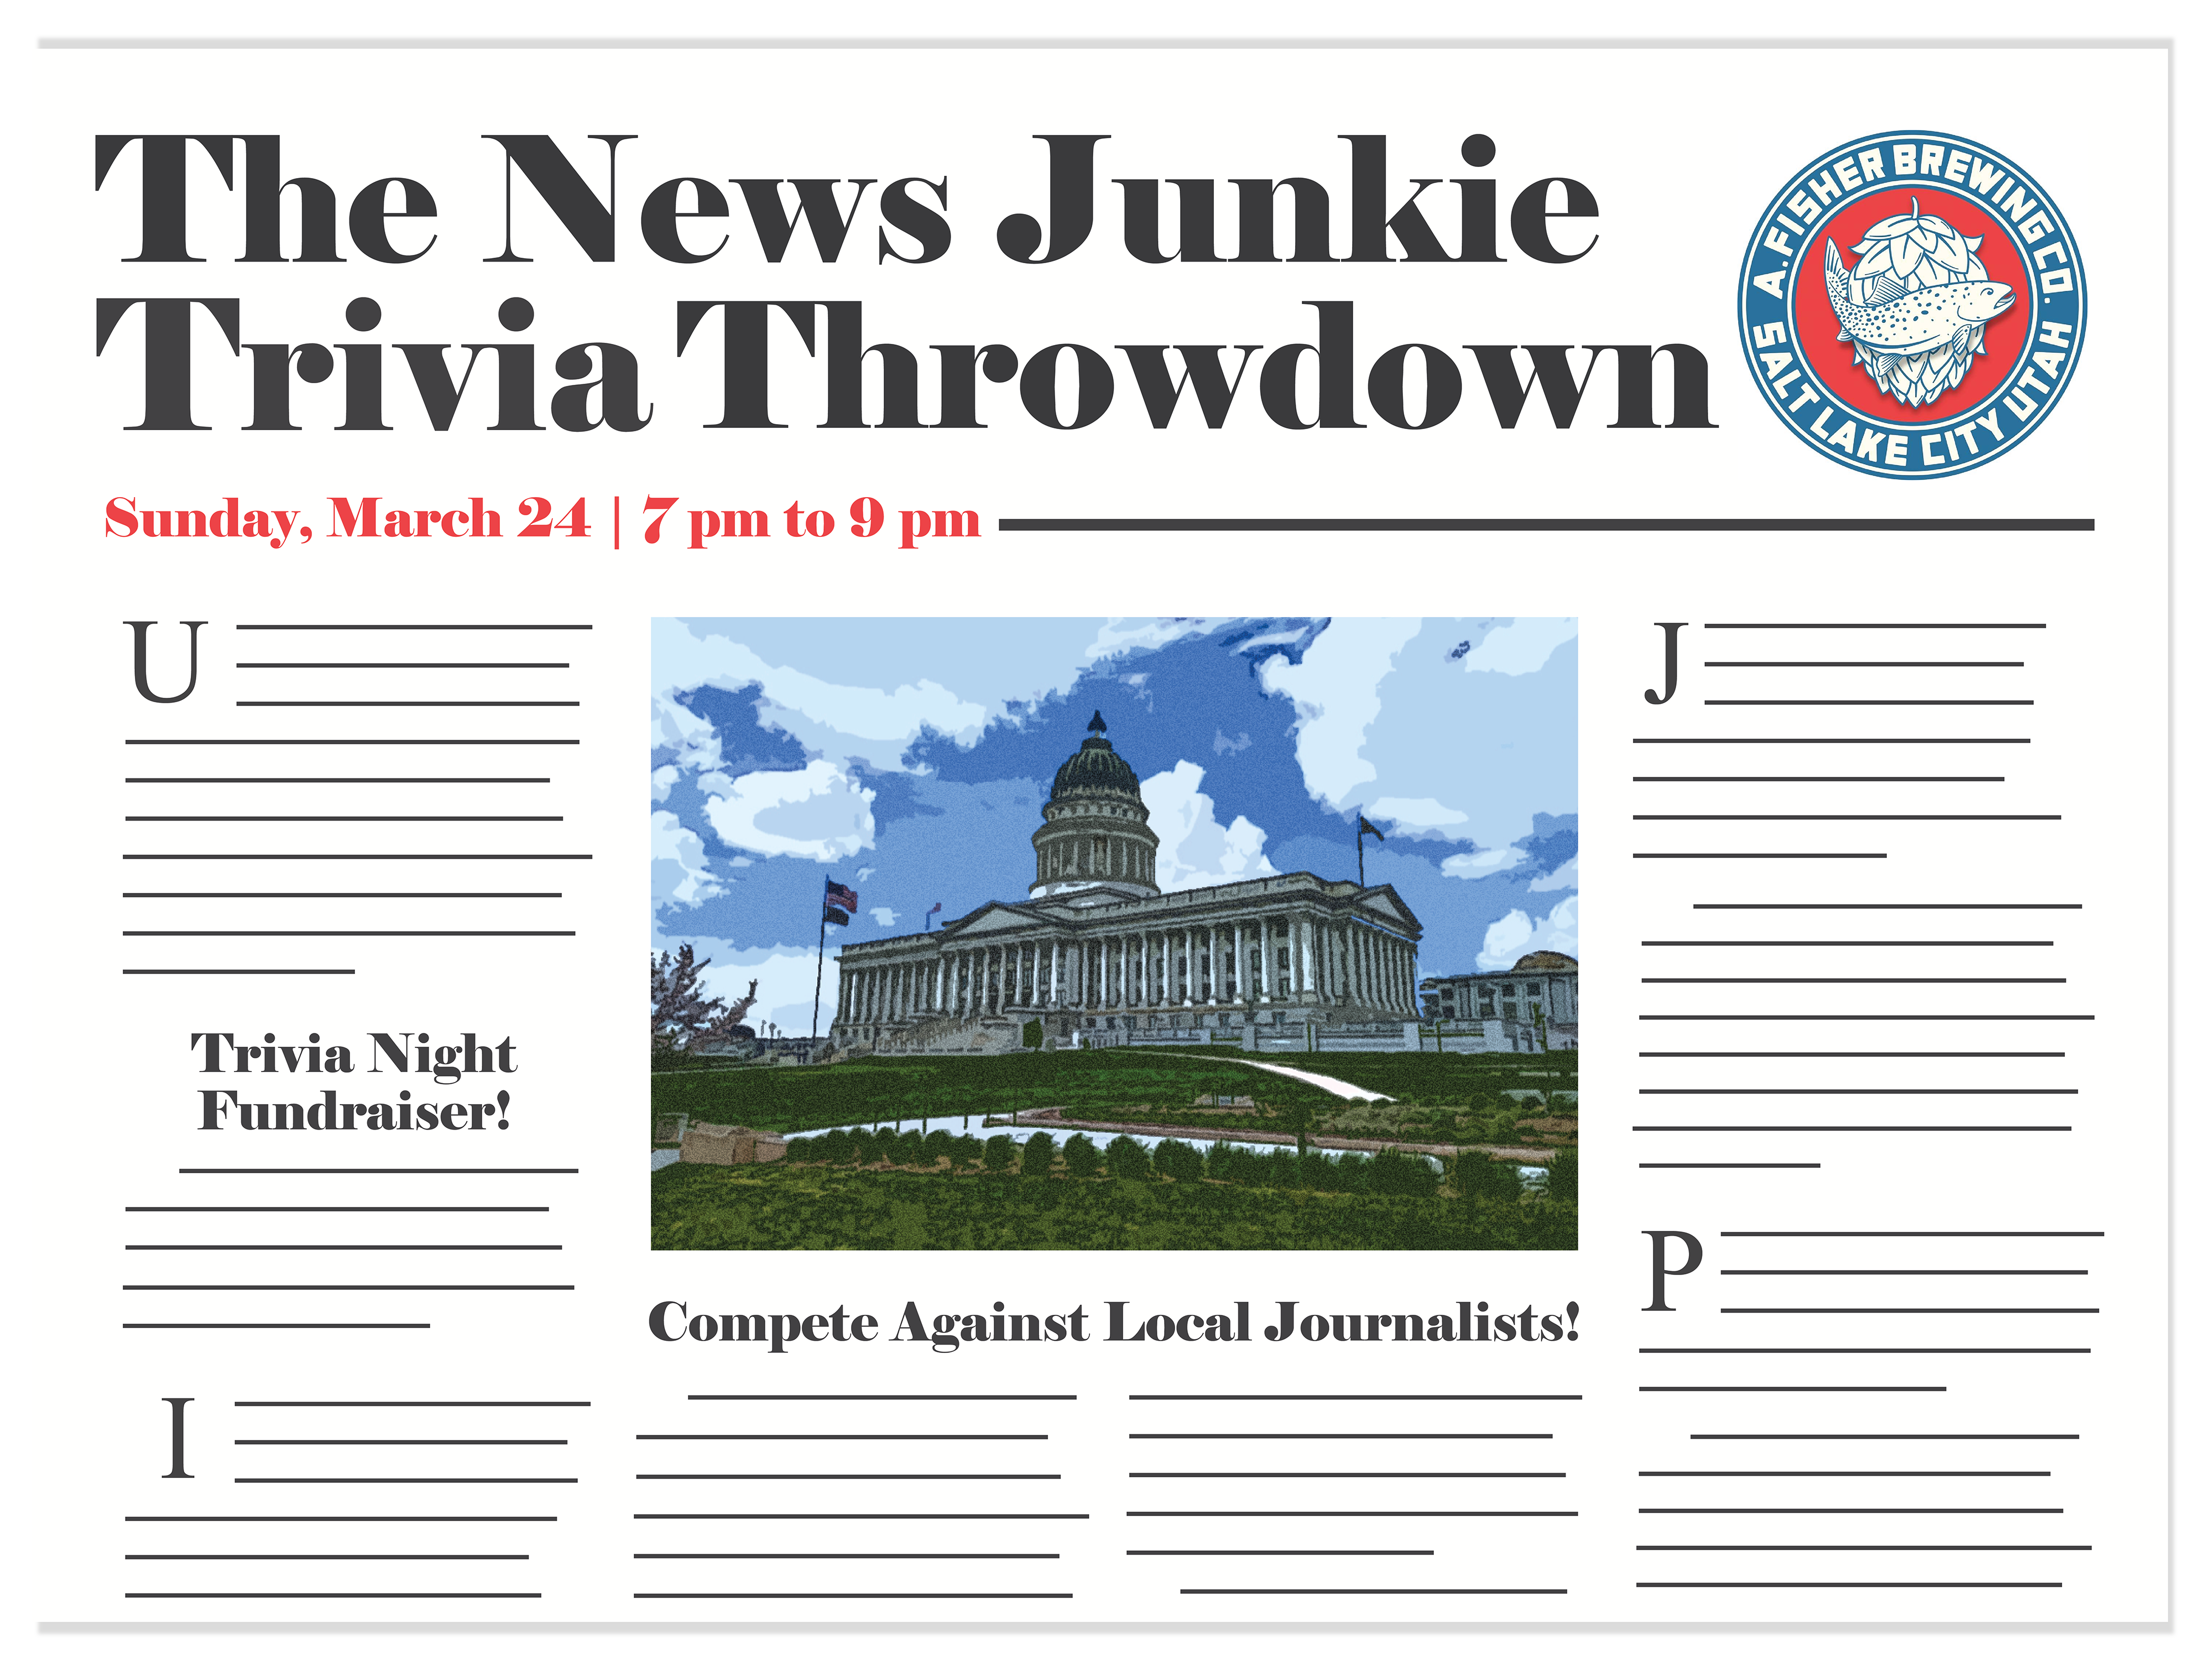 Compete against local journalists Ben Winslow and Robert Gehrke at our Trivia Night Fundraiser!